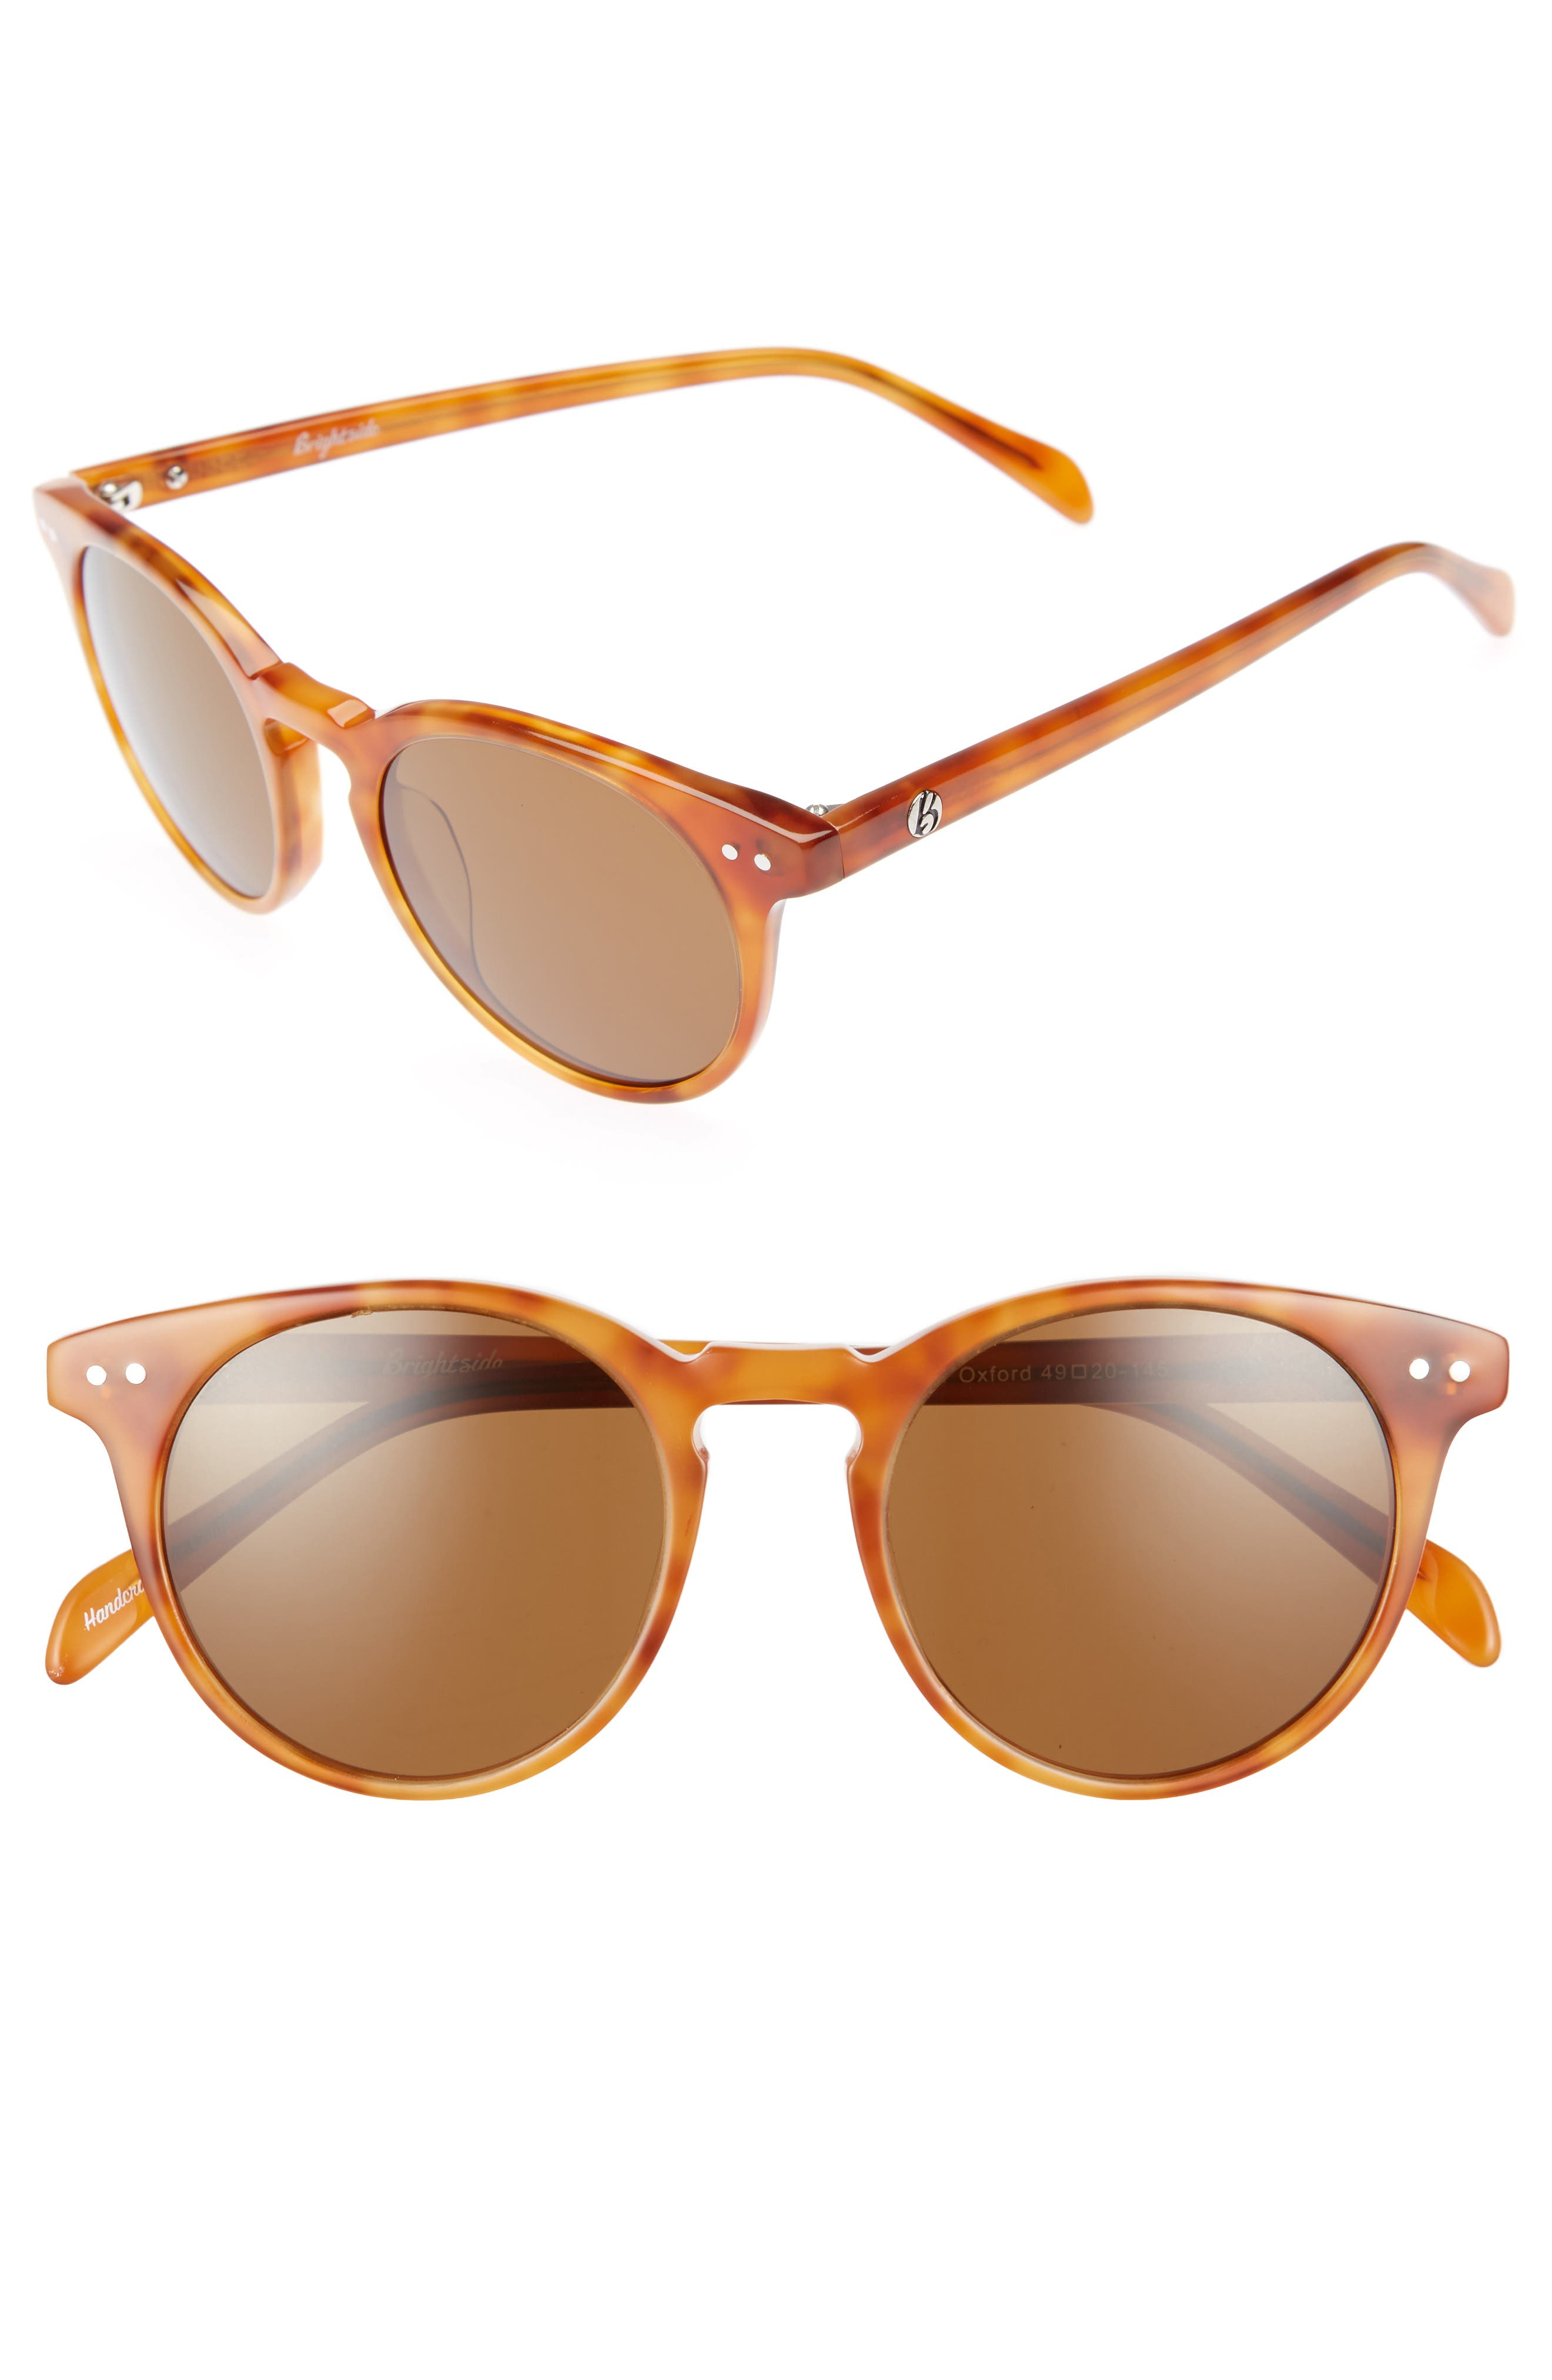 Brightside Oxford 49mm Sunglasses